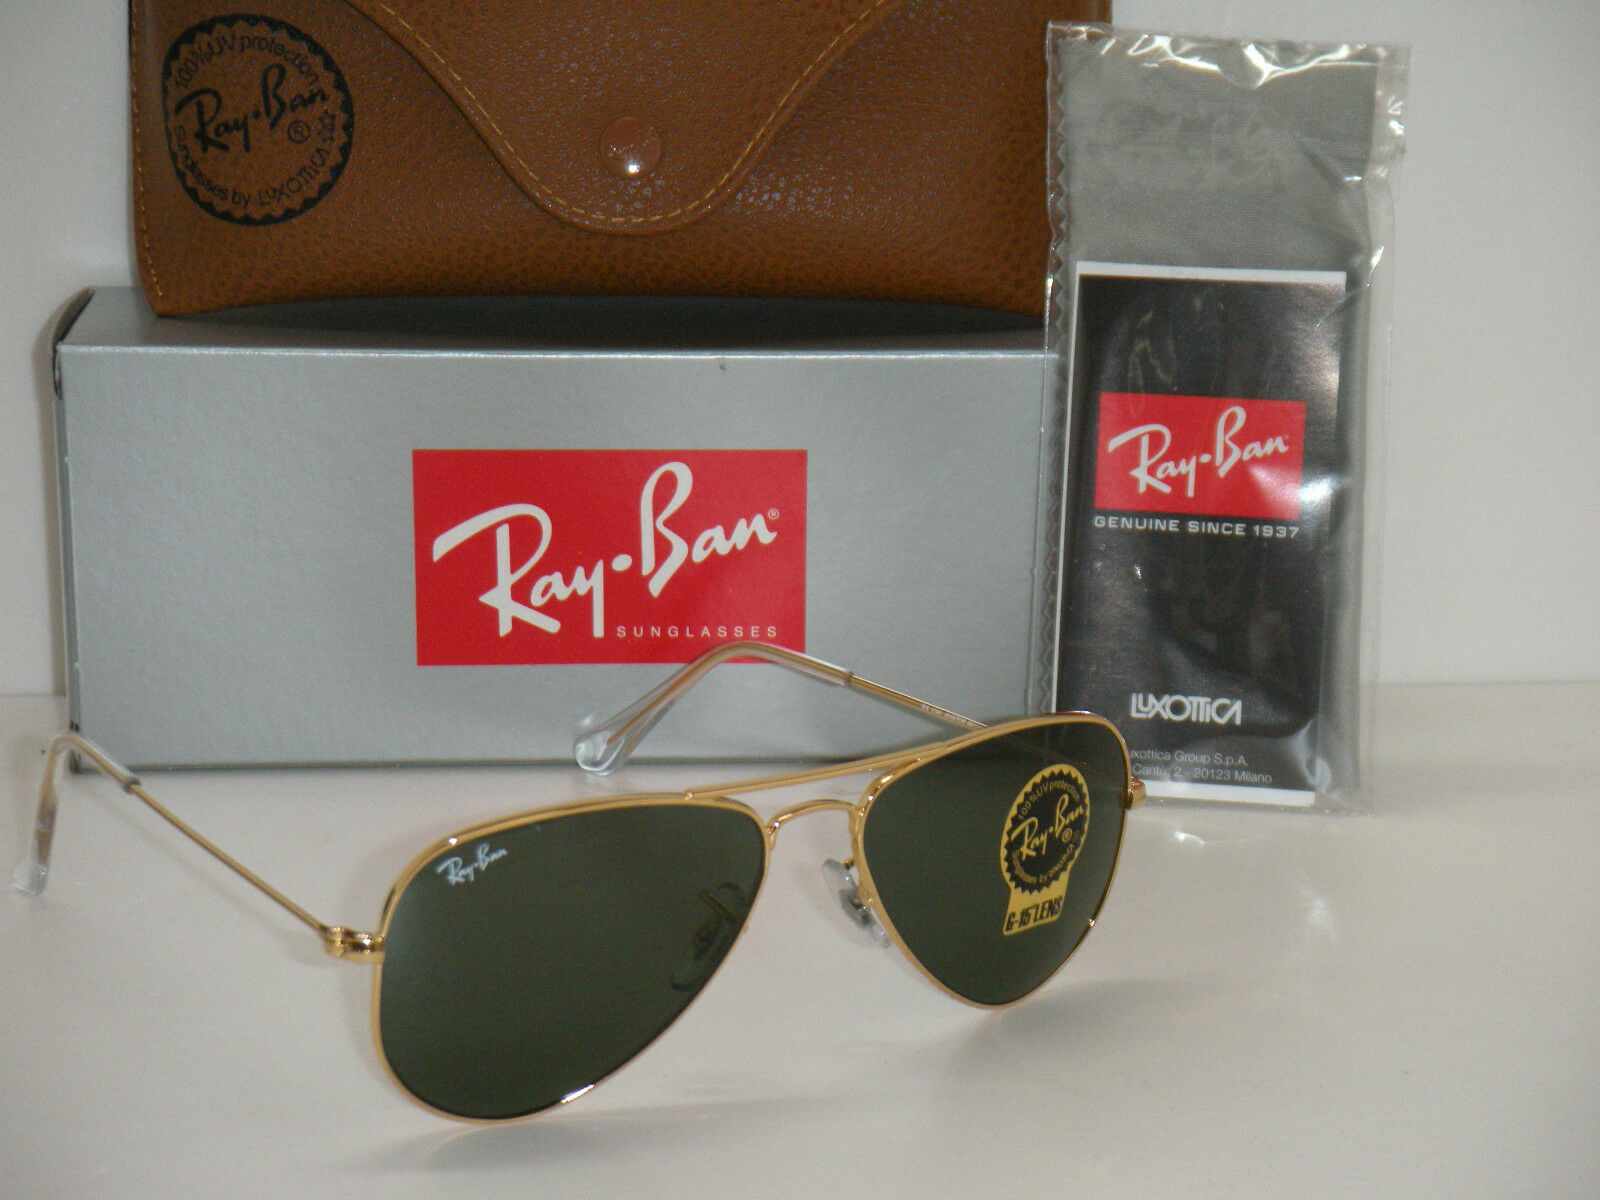 ffab31e0b0 RAY BAN AVIATOR RB 3044 L0207 52mm GOLD FRAME W  G-15XLT GREEN SUNGLASSES